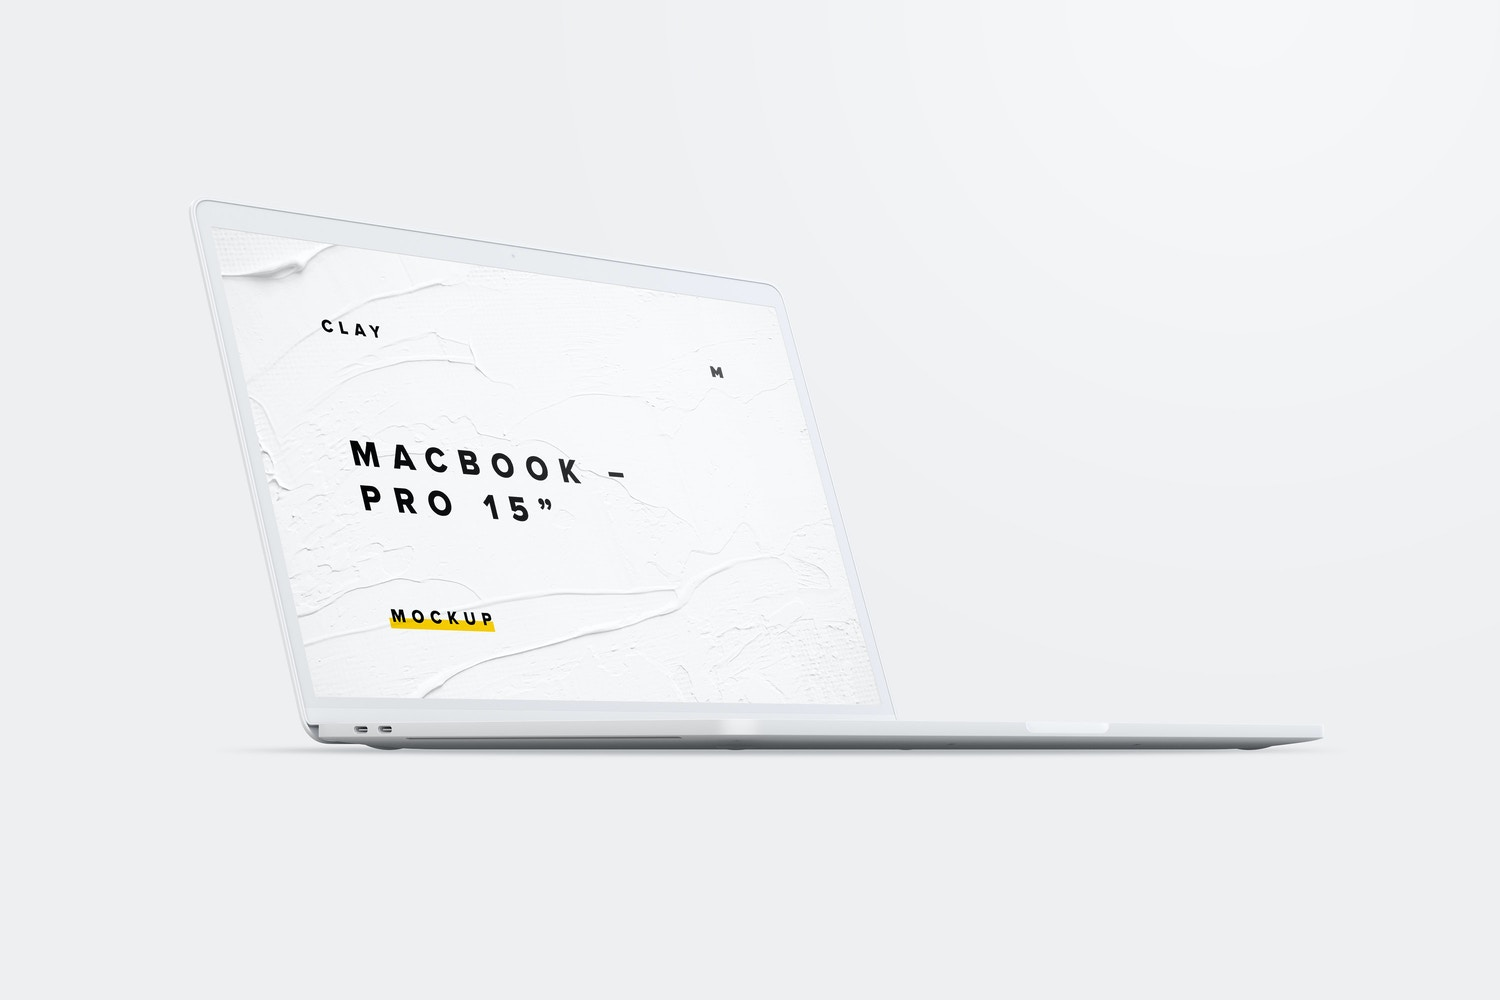 """Clay MacBook Pro 15"""" with Touch Bar, Front Left View Mockup"""